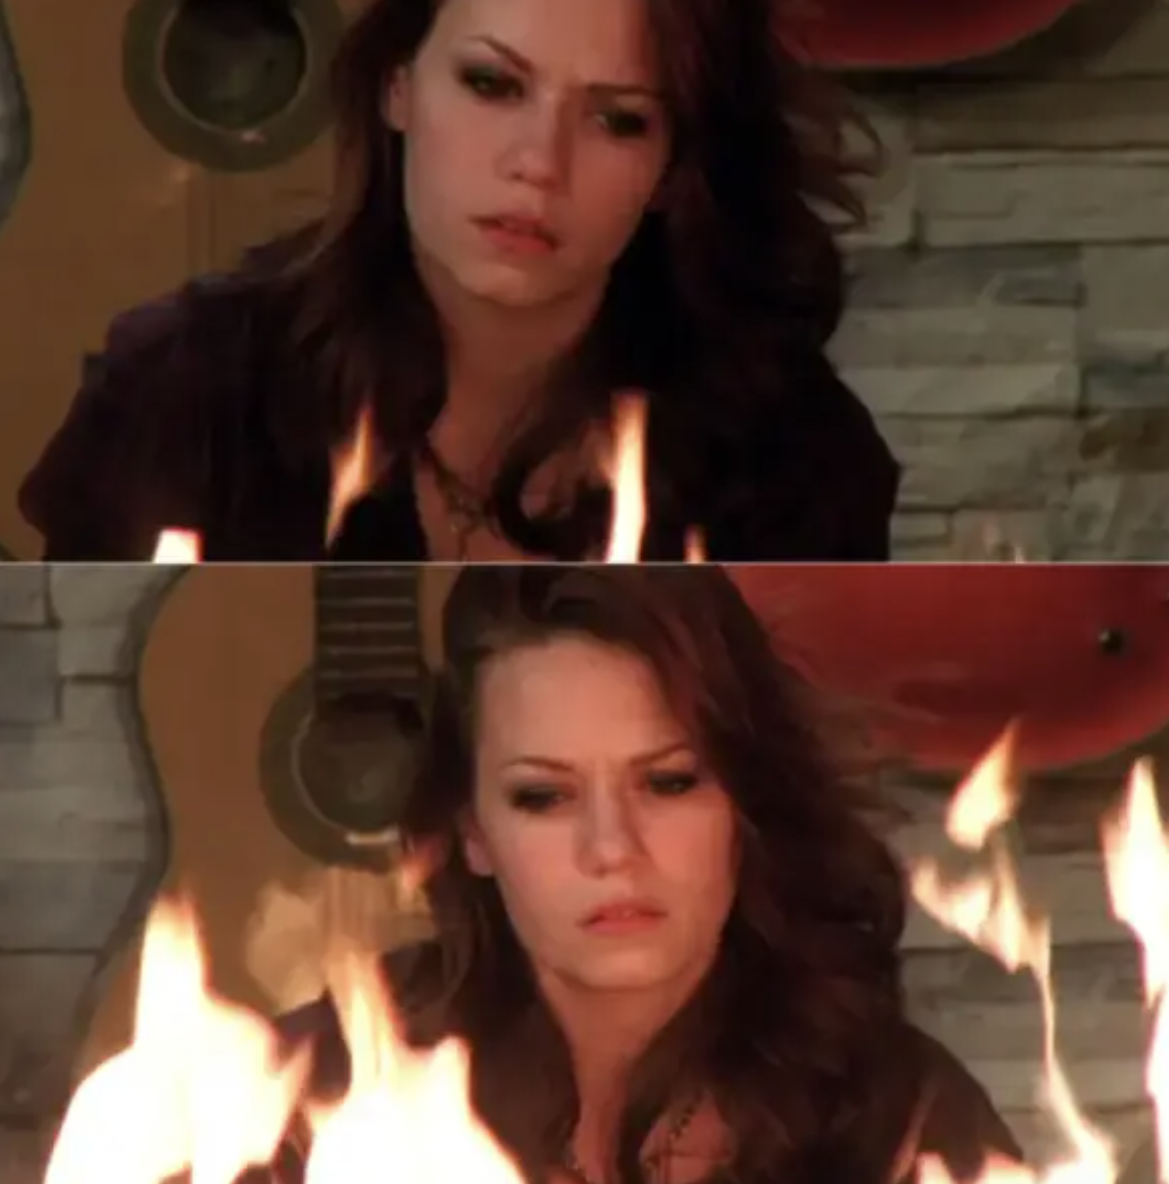 Haley almost burns the house down